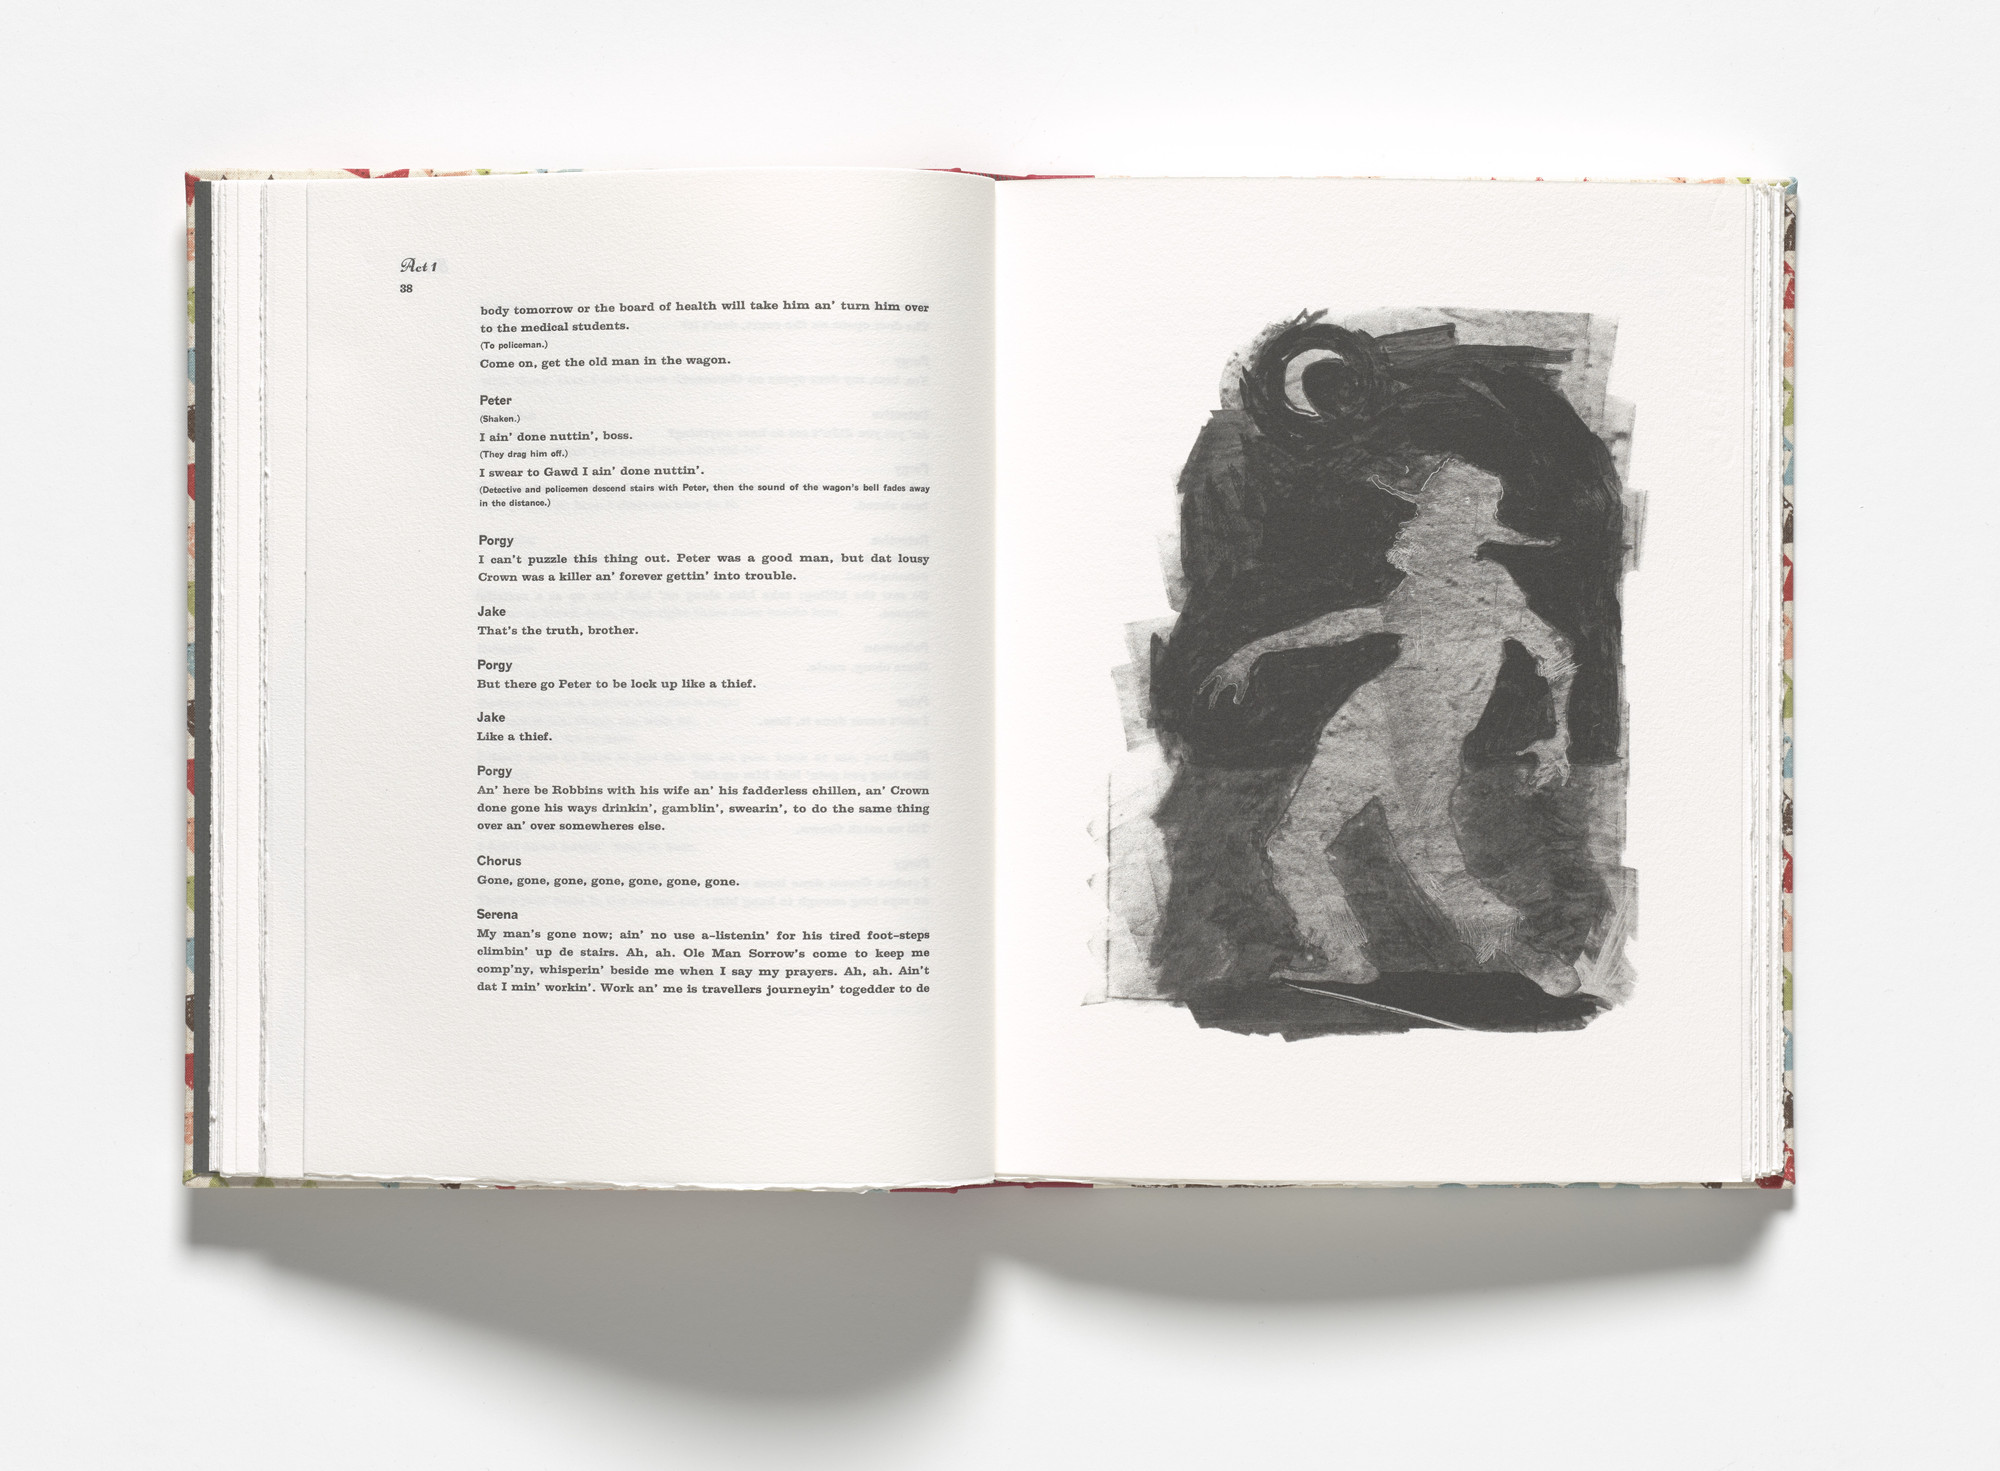 Kara Walker. Porgy and moon (plate, facing page 38) from Porgy & Bess. 2013